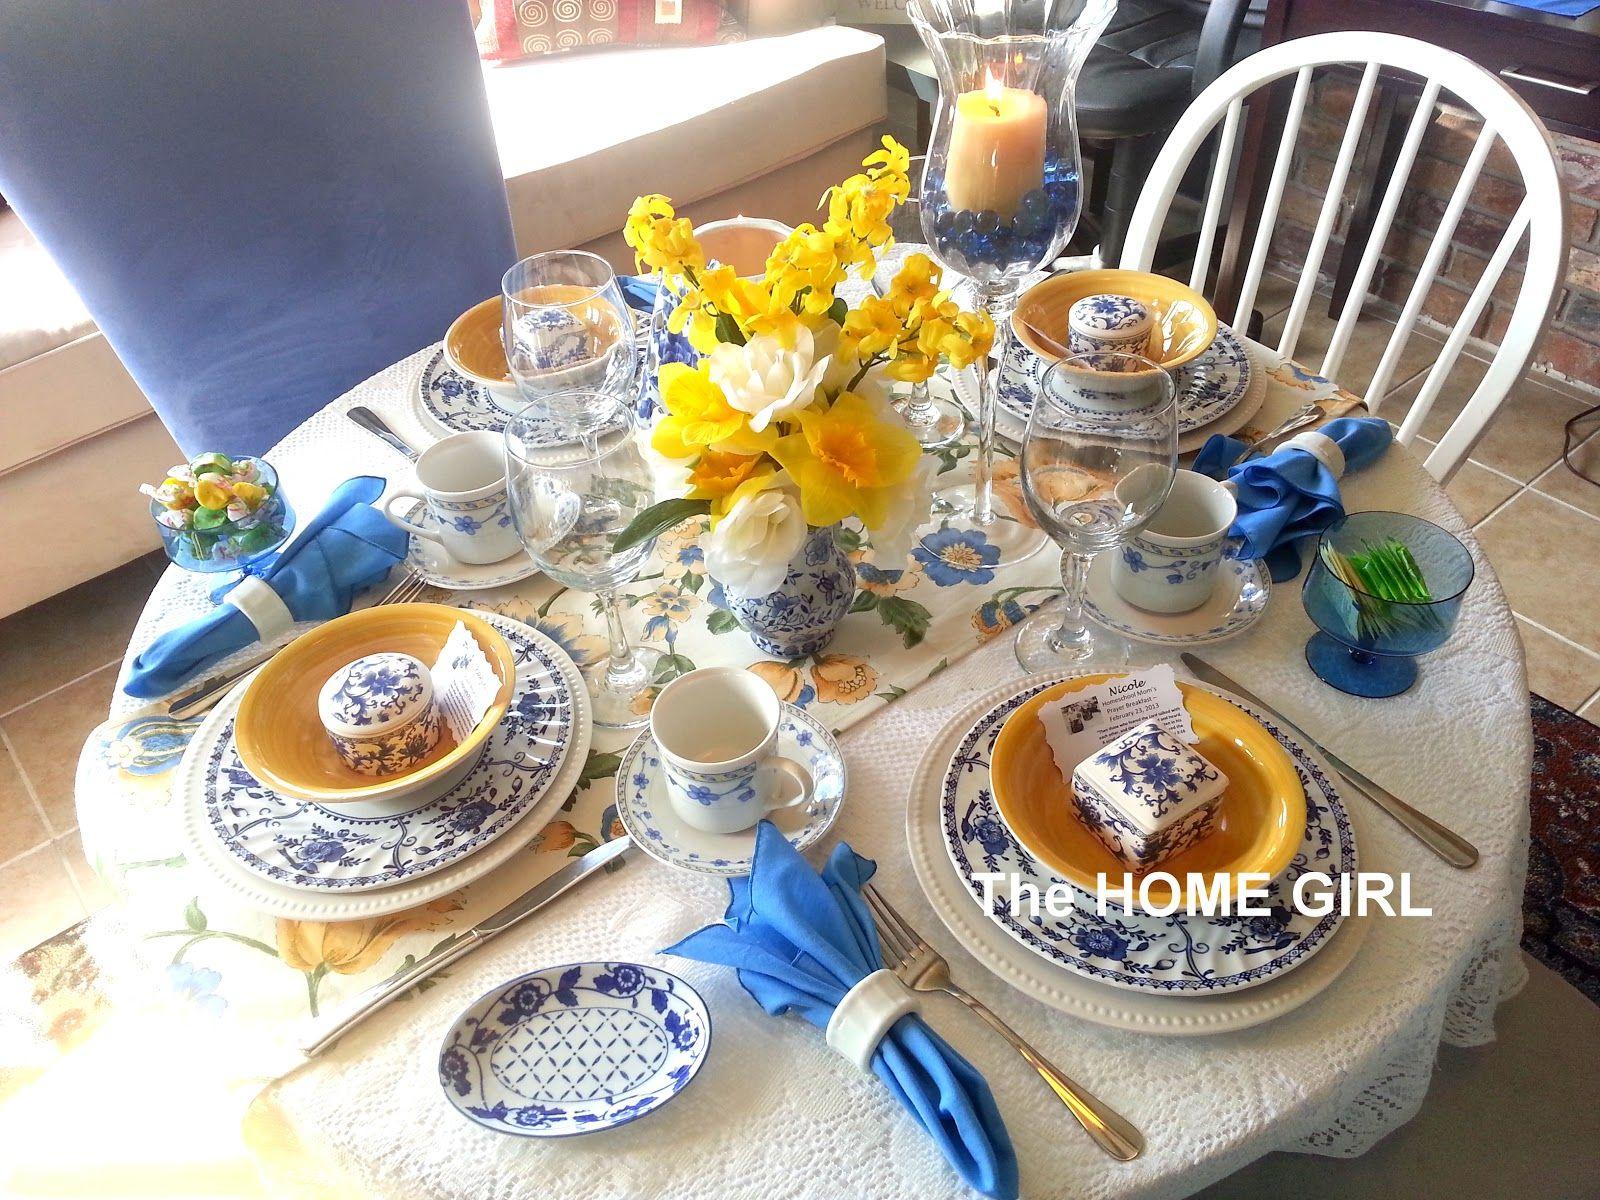 Ladies Prayer Breakfast Tablescape A pretty spring table setting. & The HOME GIRL!: Ladies Prayer Breakfast Tablescape A pretty spring ...